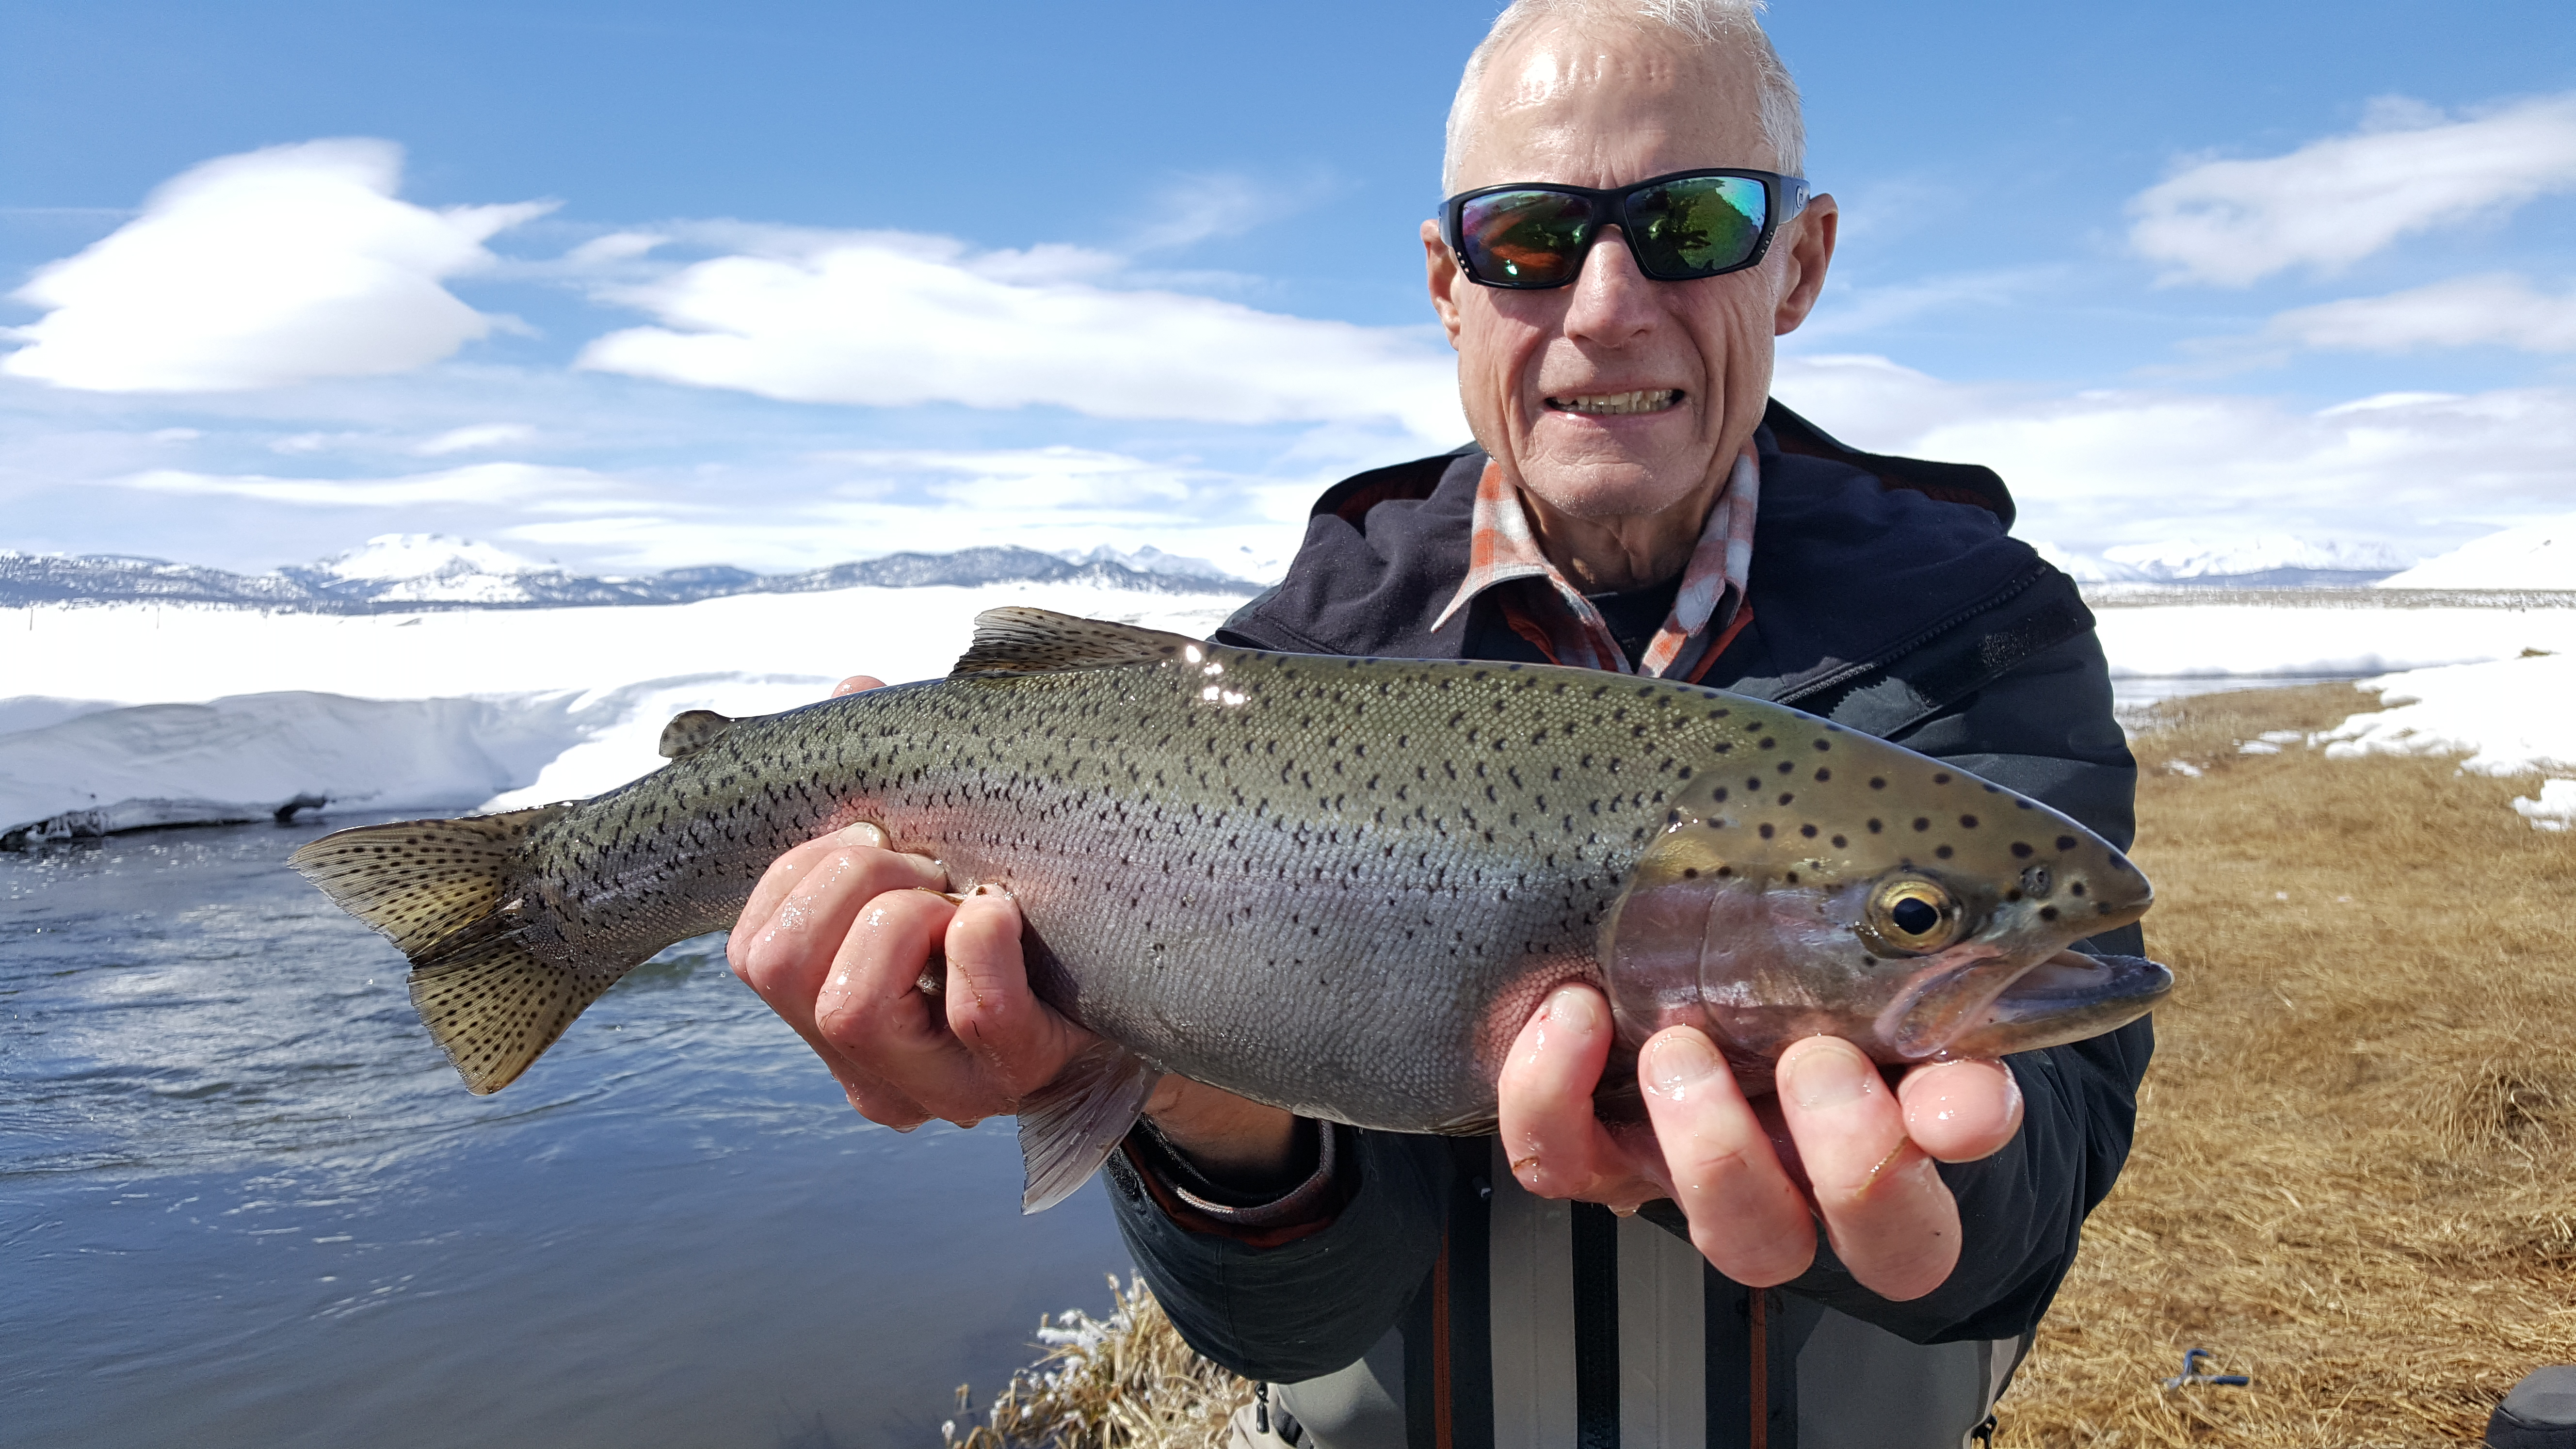 Upper owens fly fishing report mammoth lakes ca for Trouts fly fishing reports